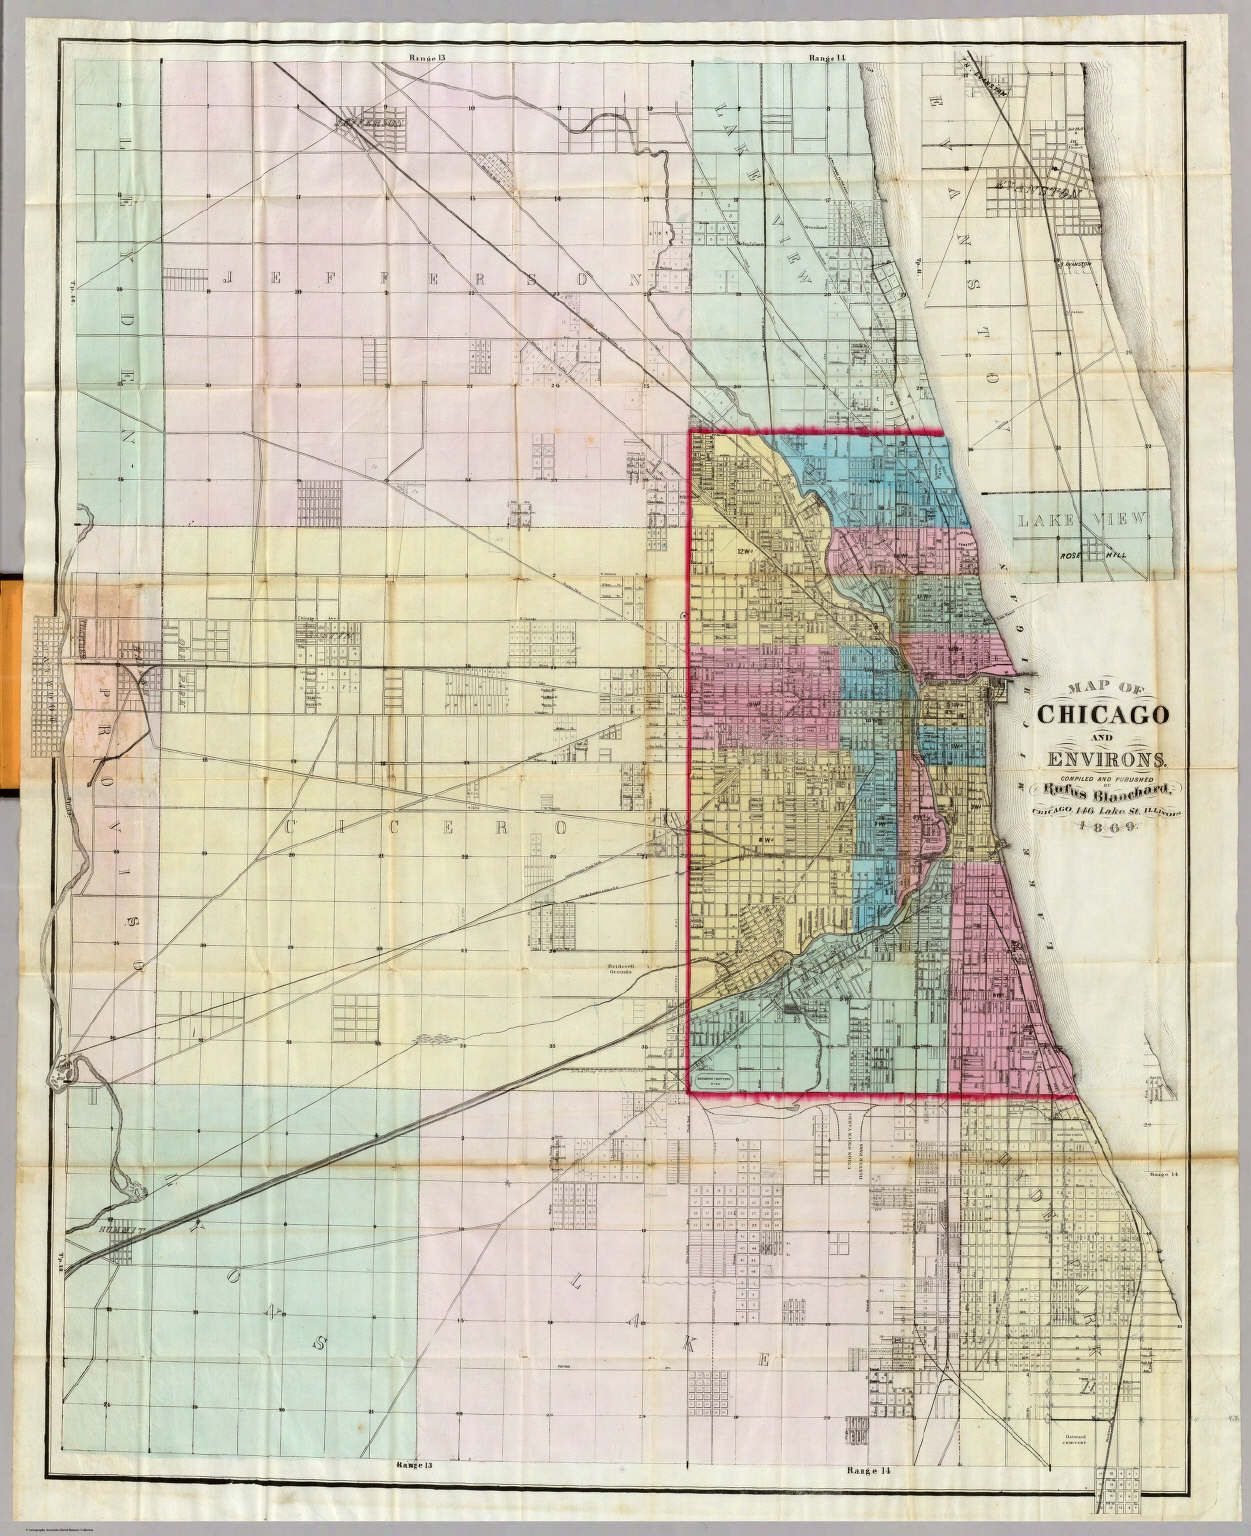 Map Of Chicago And Environs David Rumsey Historical Map Collection